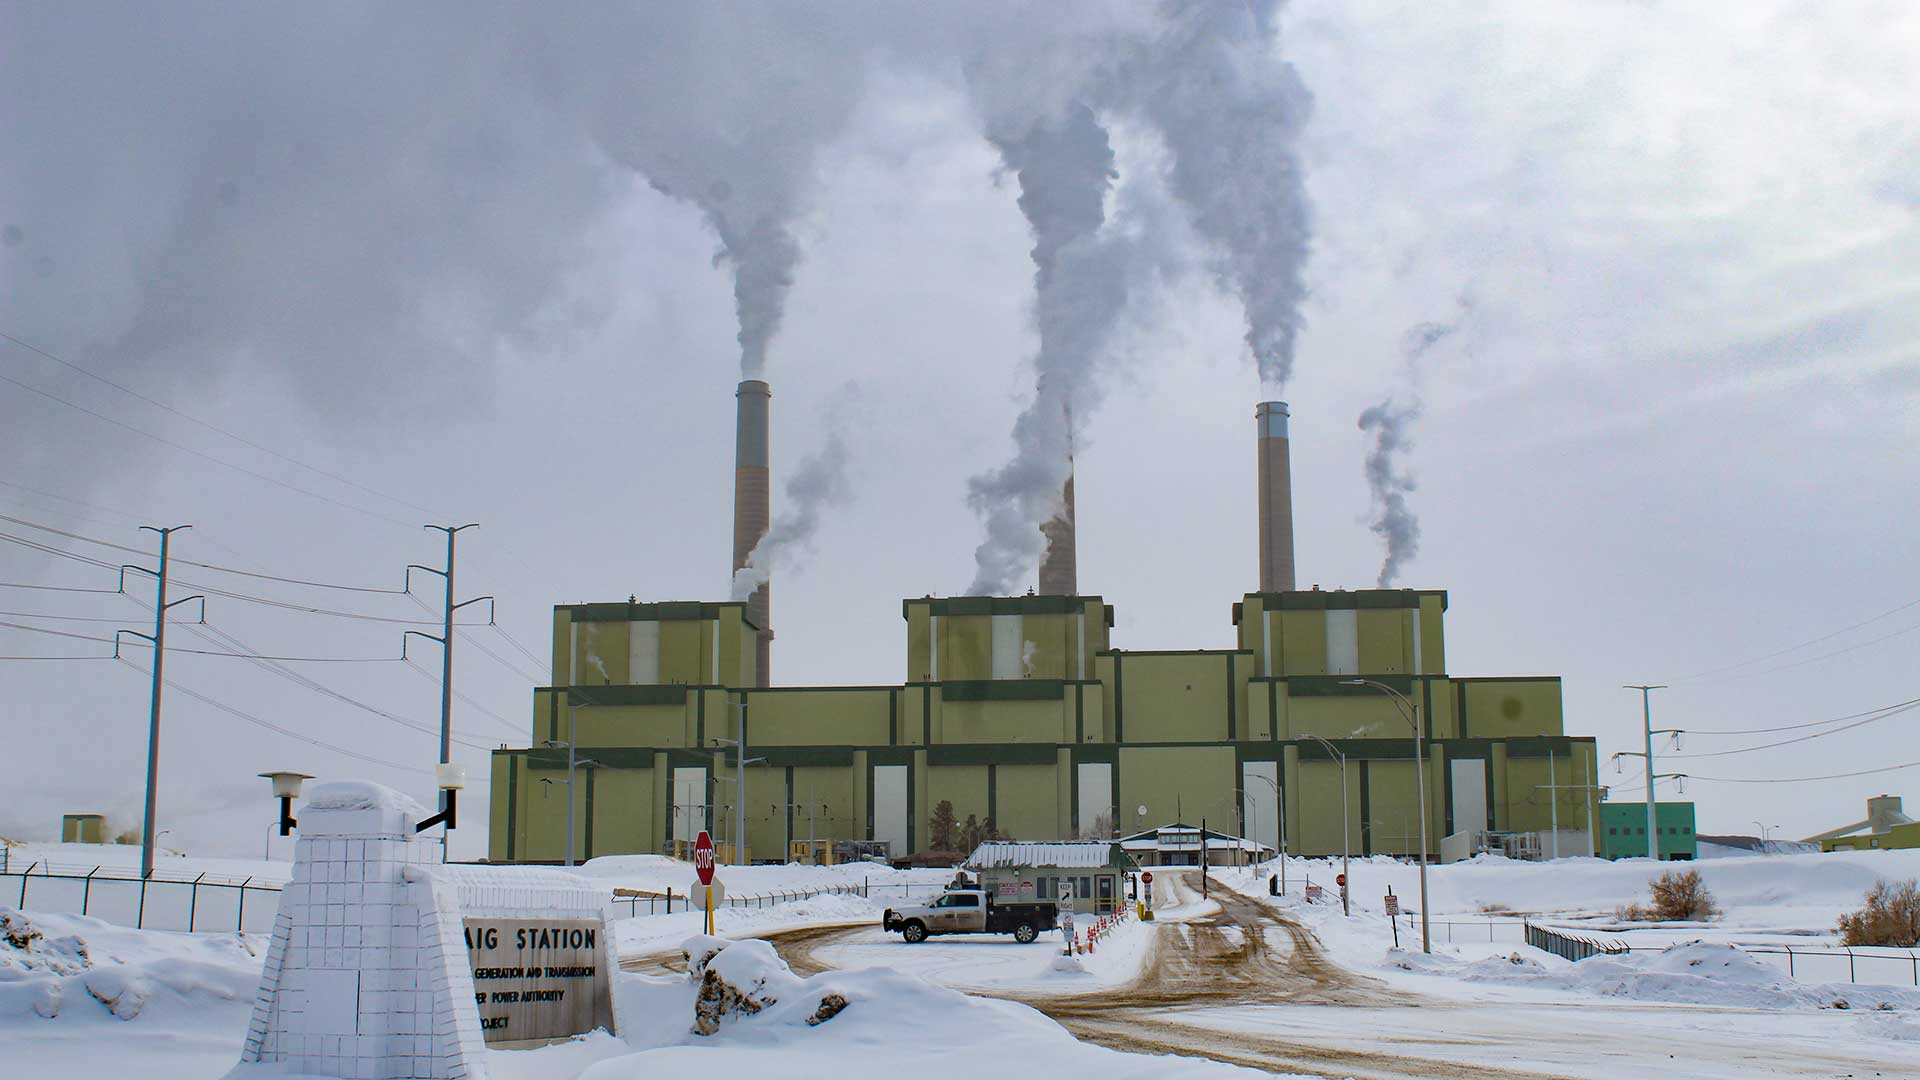 Craig Station, a coal fired power plant in northwest Colorado, is slated to close by 2030.